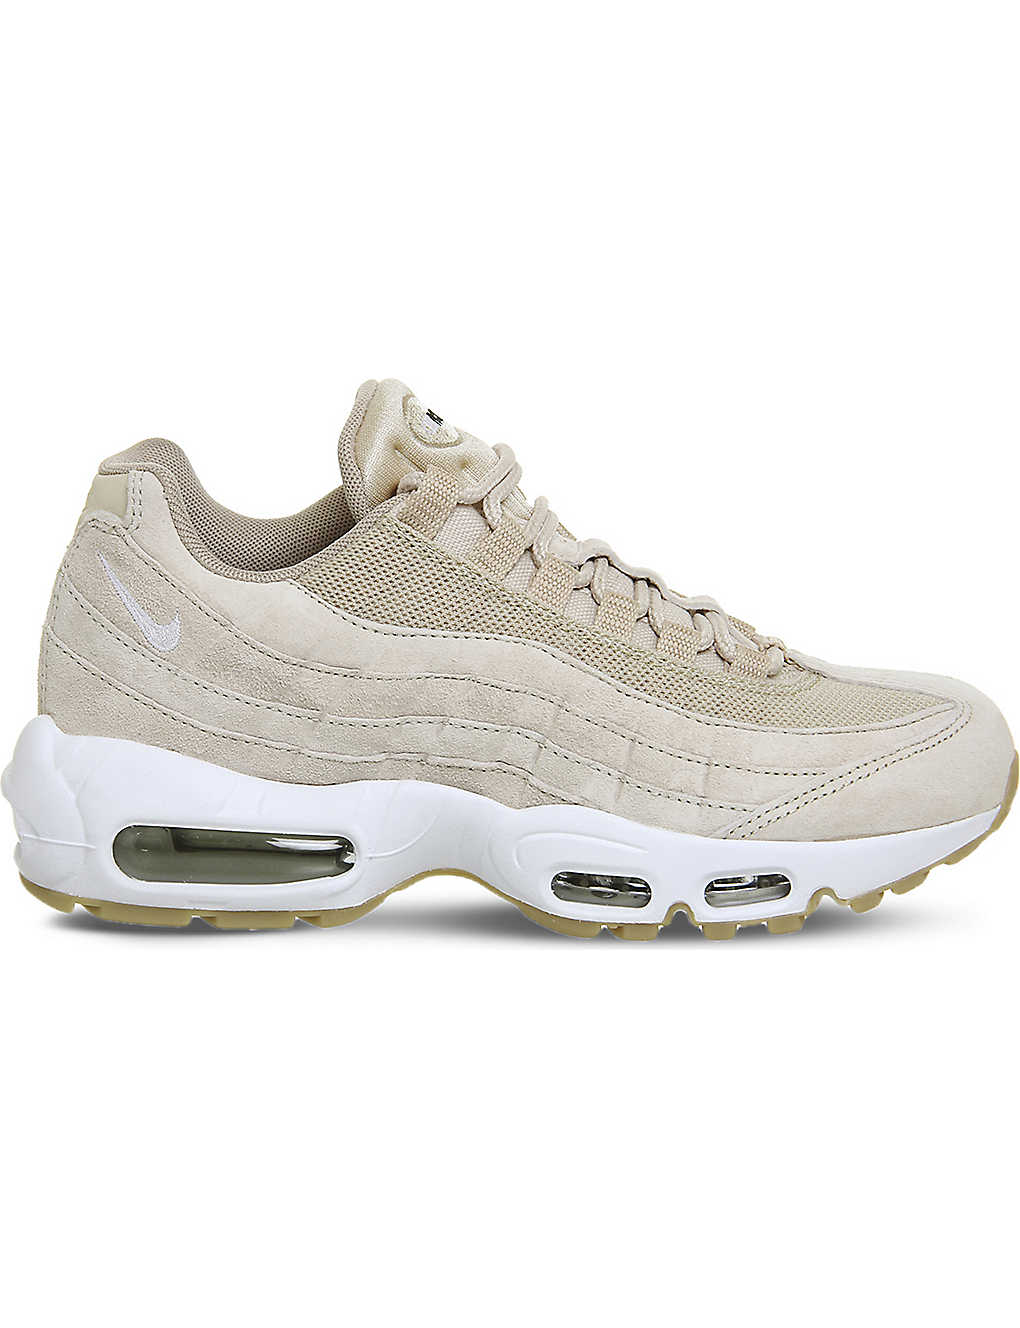 watch ed023 13faf ... Air Max 95 suede and mesh trainers zoom ...